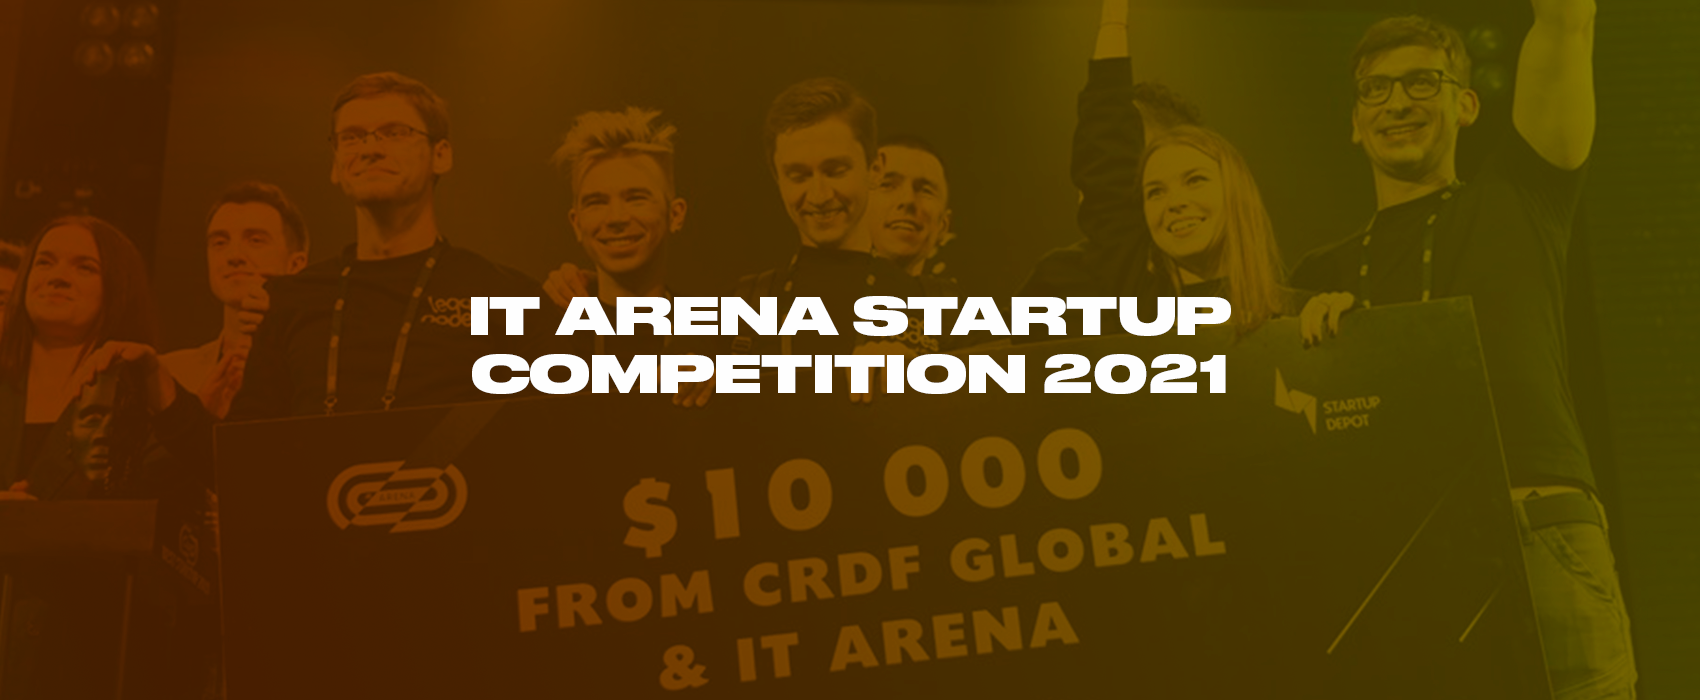 IT Arena Startup Competition 2021